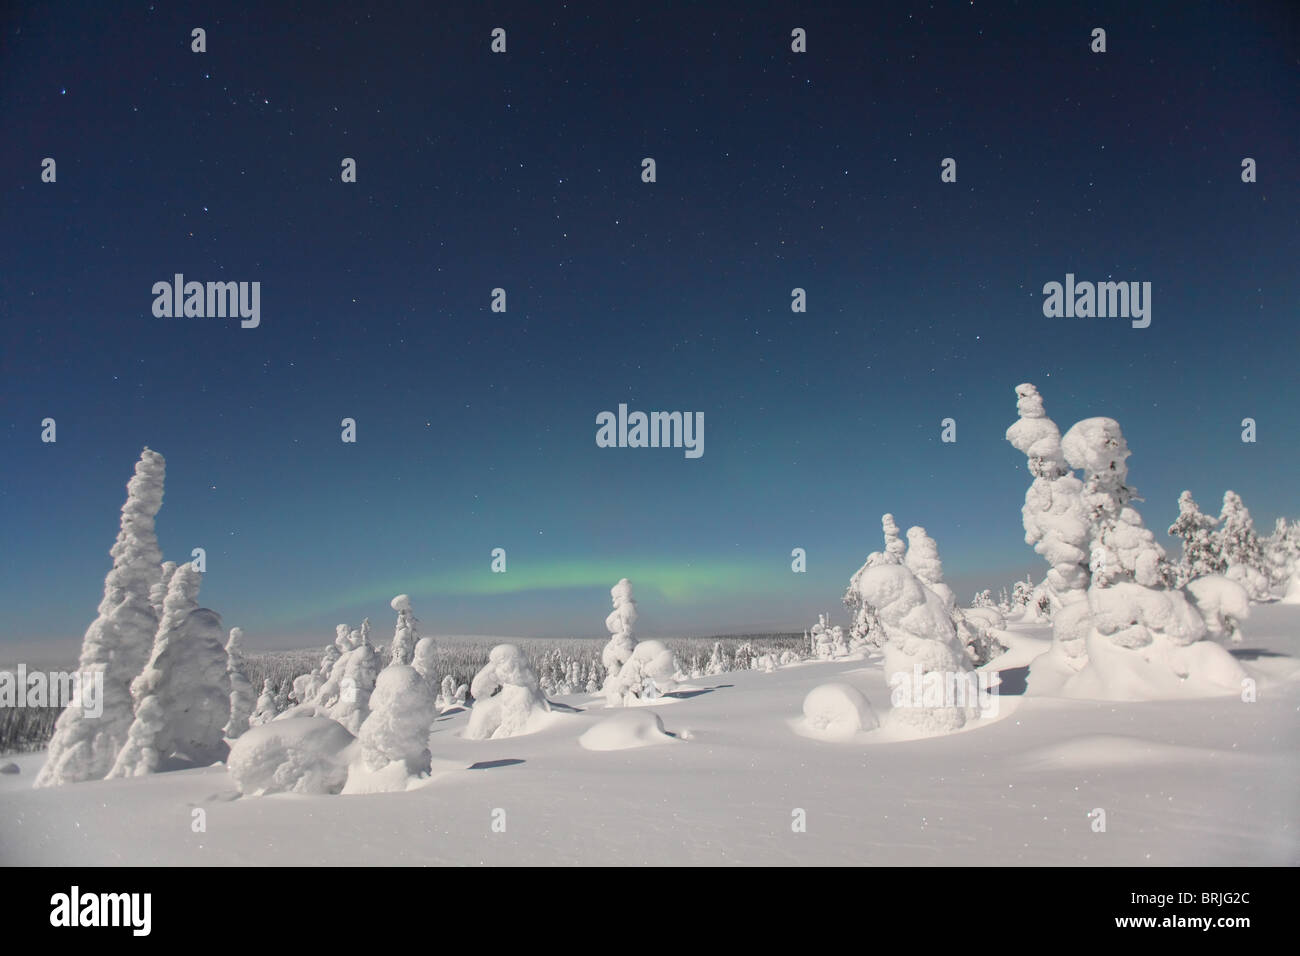 Aurora Borealis over snowy landscape in Riisitunturi National Park at night, Finland Stock Photo